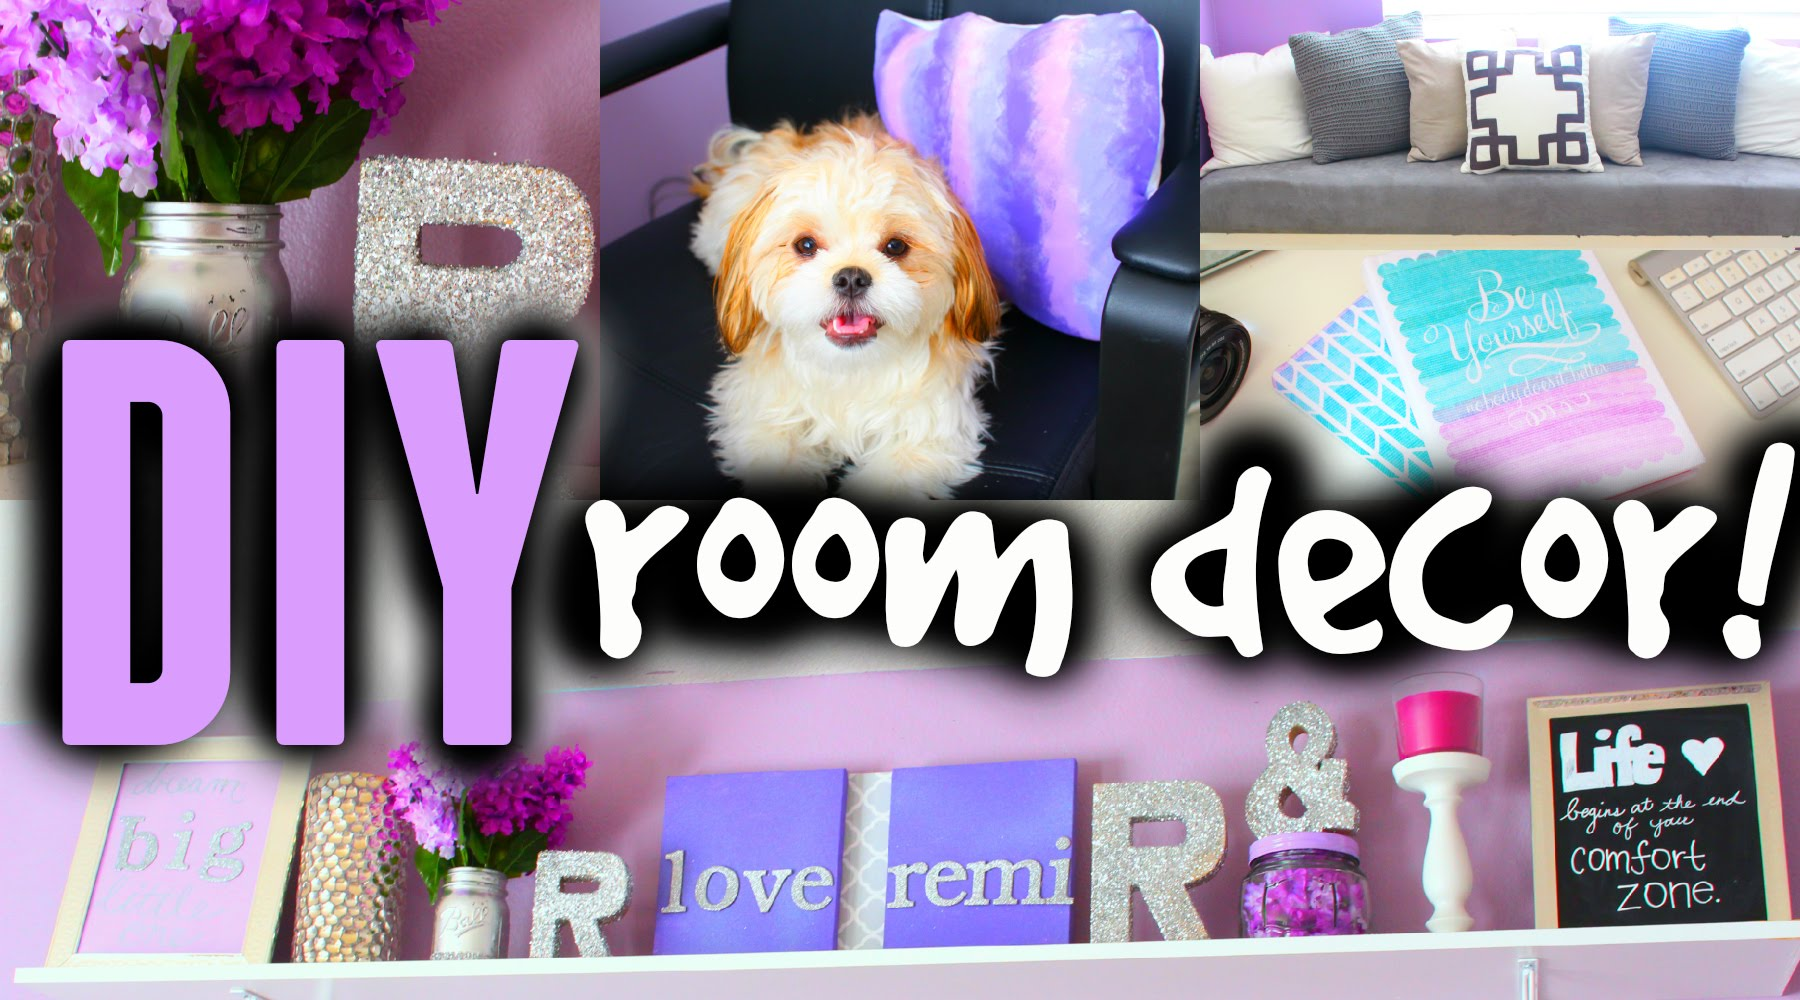 Diy Projects Video Diy Room Decor Ideas For Teens Cute Cheap Easy Diyall Net Home Of Diy Craft Ideas Inspiration Diy Projects Craft Ideas How To S For